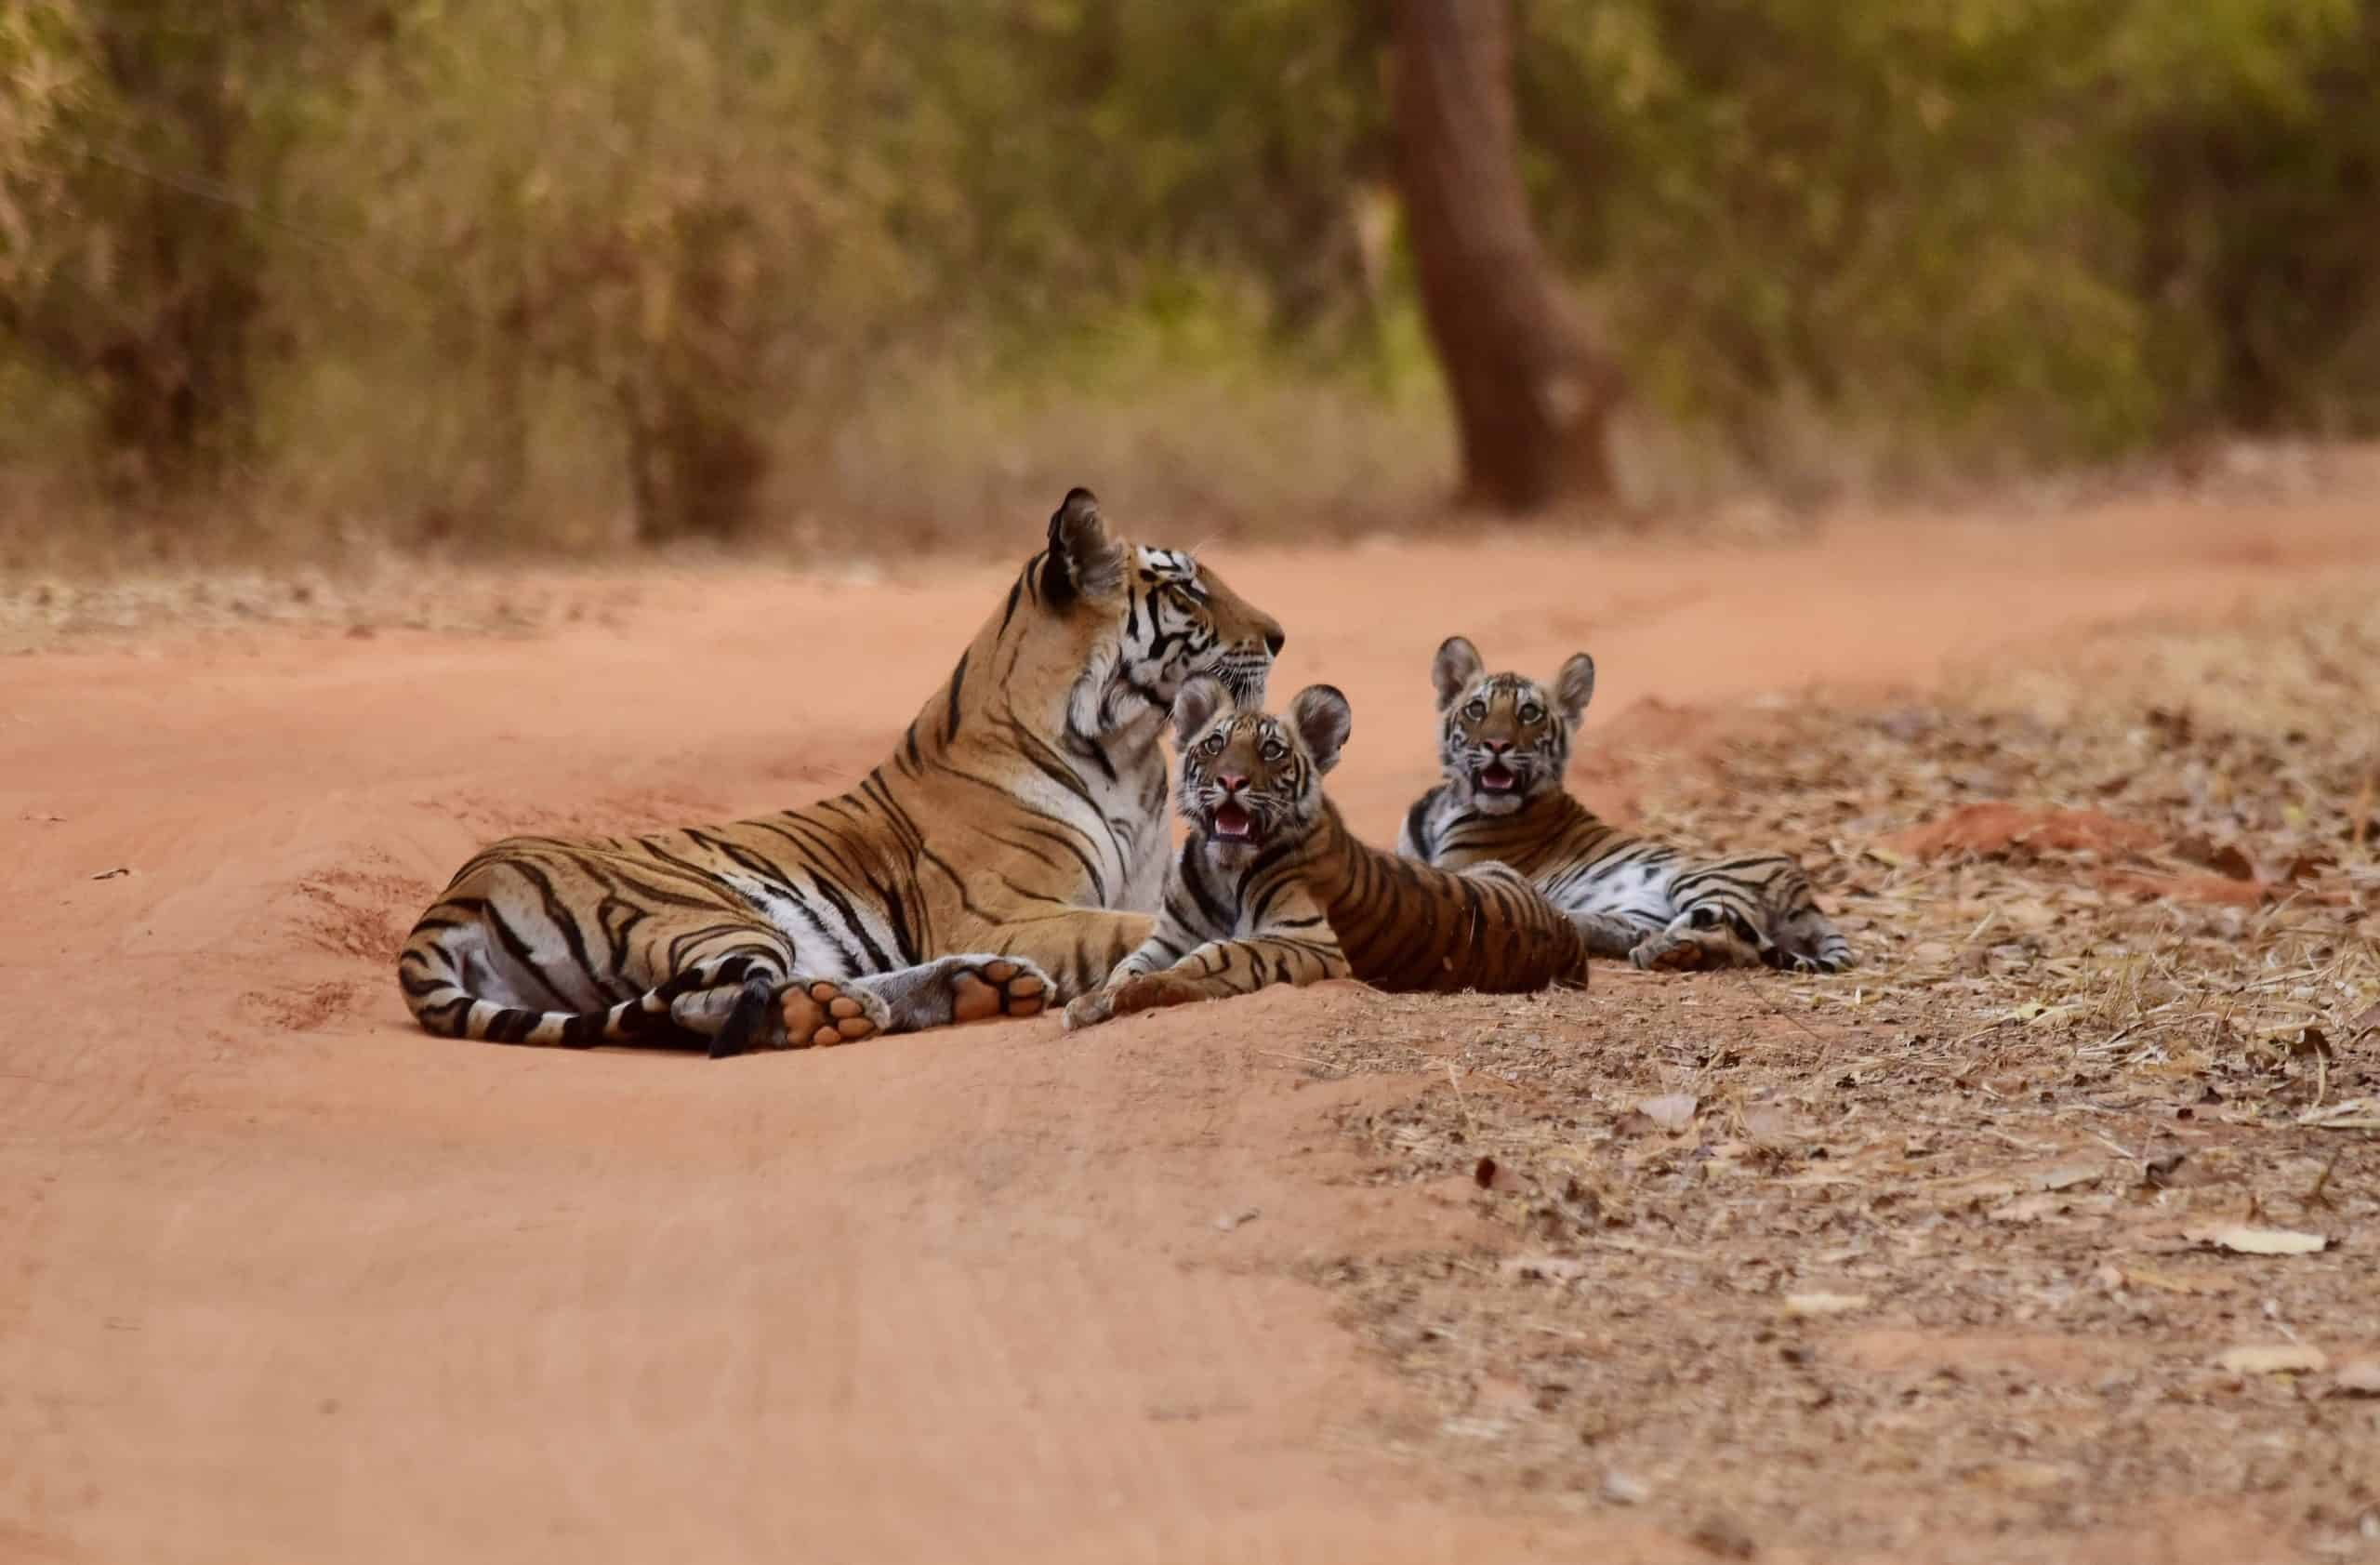 Some Interesting Ways To Click The Beautiful Wild Animals Pictures